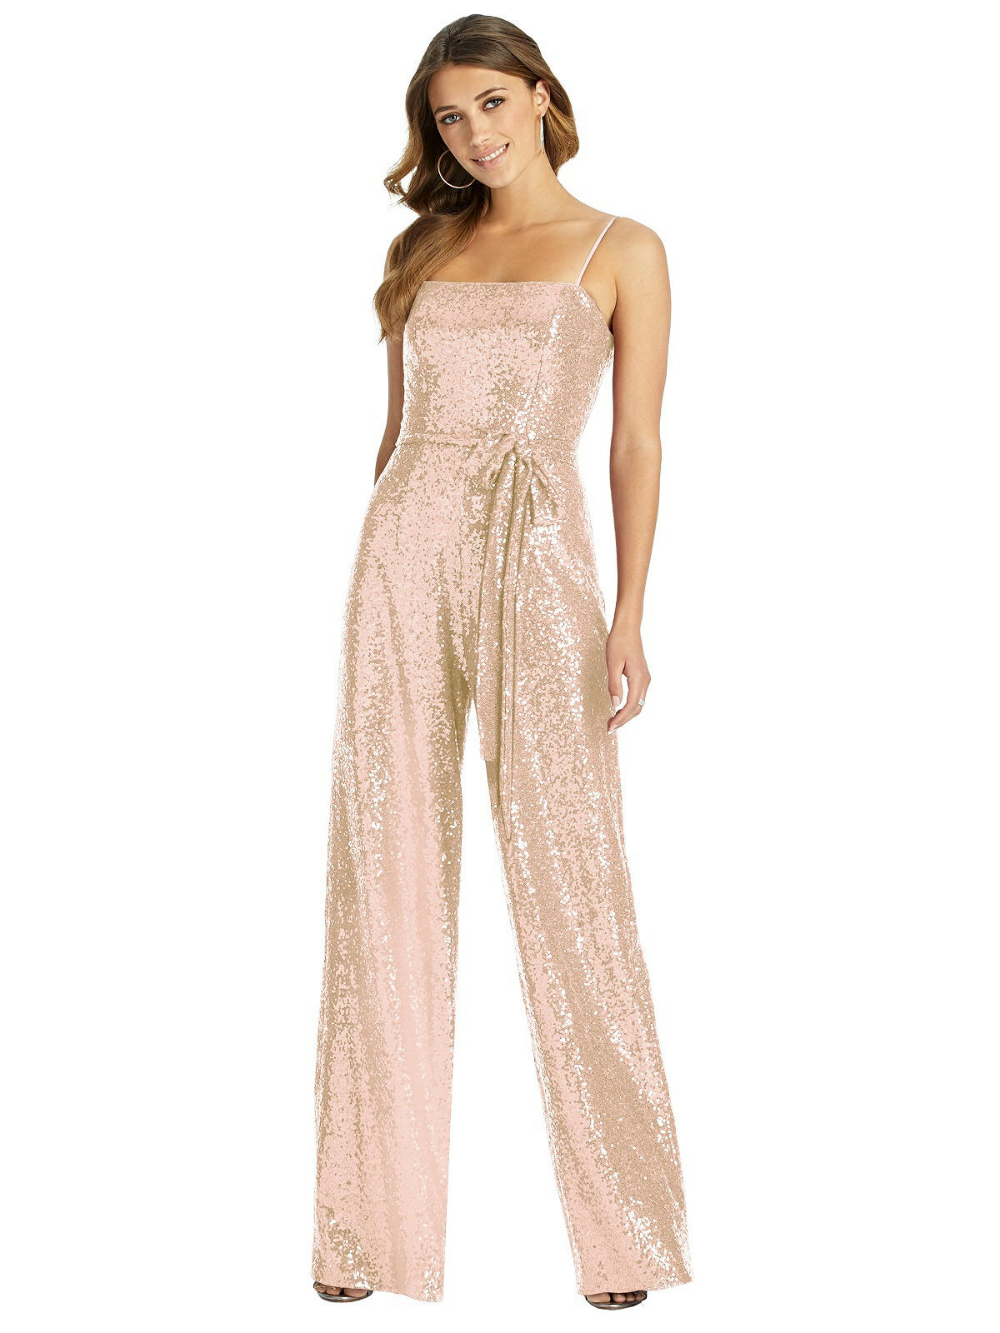 Dessy Bridesmaid Jumpsuit Alexis #bridesmaidjumpsuits